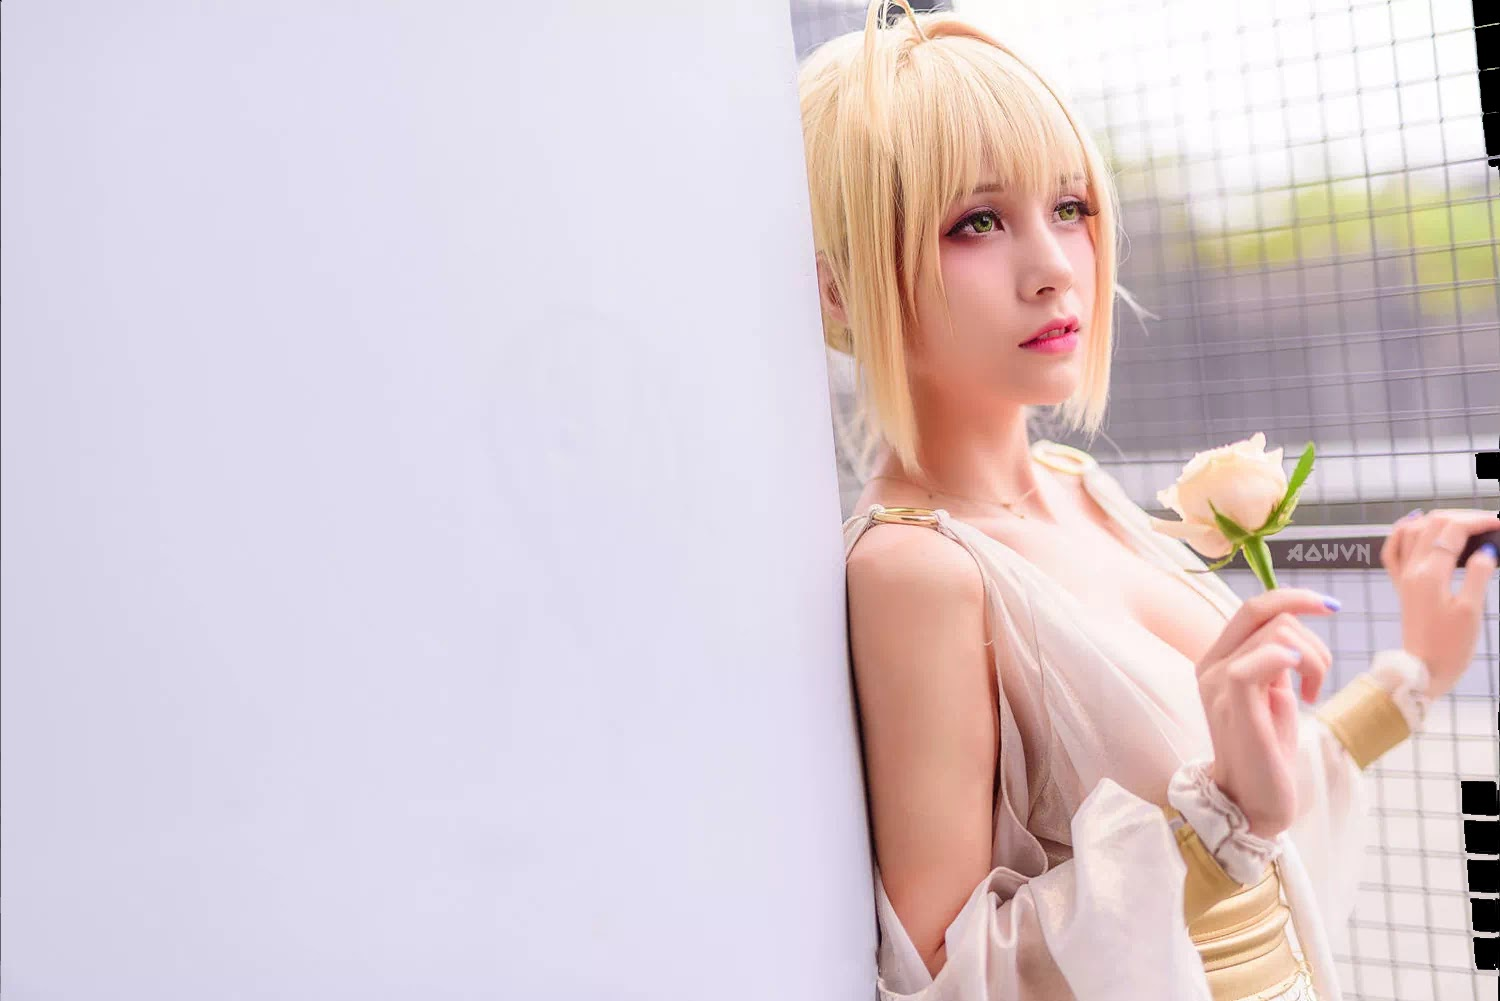 AowVN.org minz%2B%252827%2529 - [ Cosplay ] Nero - Saber anime Fate by Xia Mei Jiang tuyệt đẹp | AowVN Wallpapers